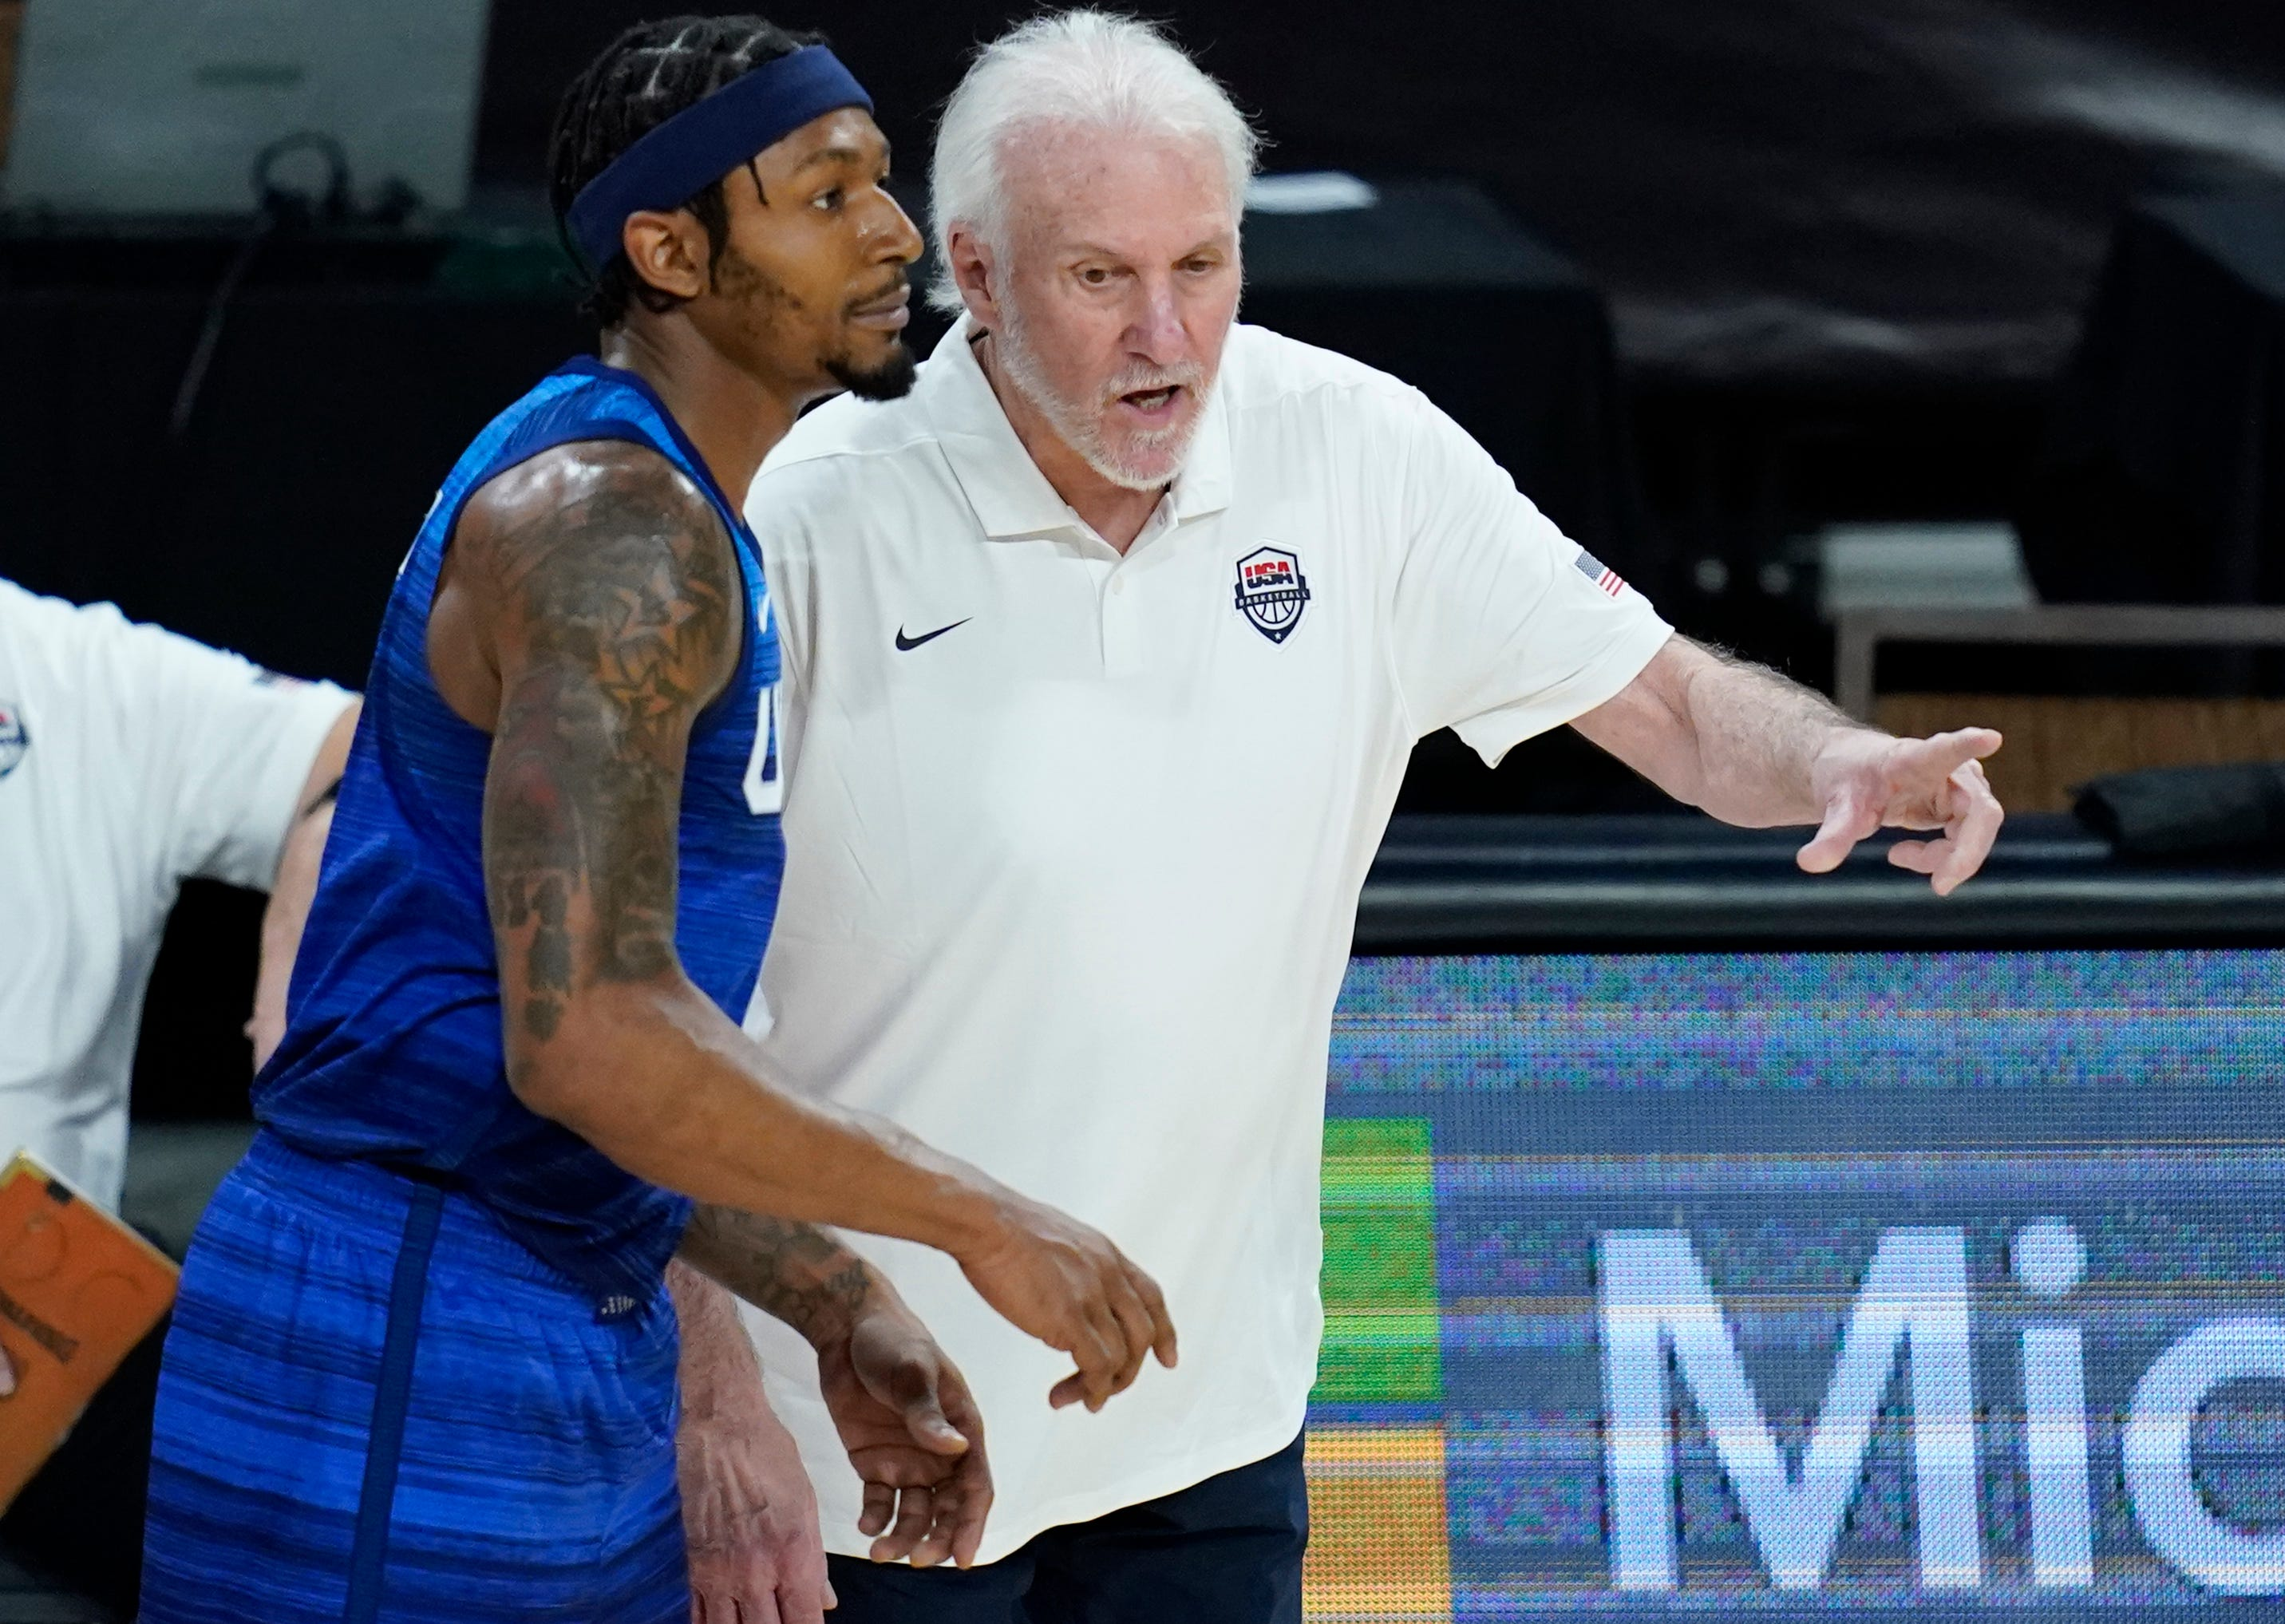 Opinion: US men s basketball team looking far from gold medal favorite in Olympic tune-up games